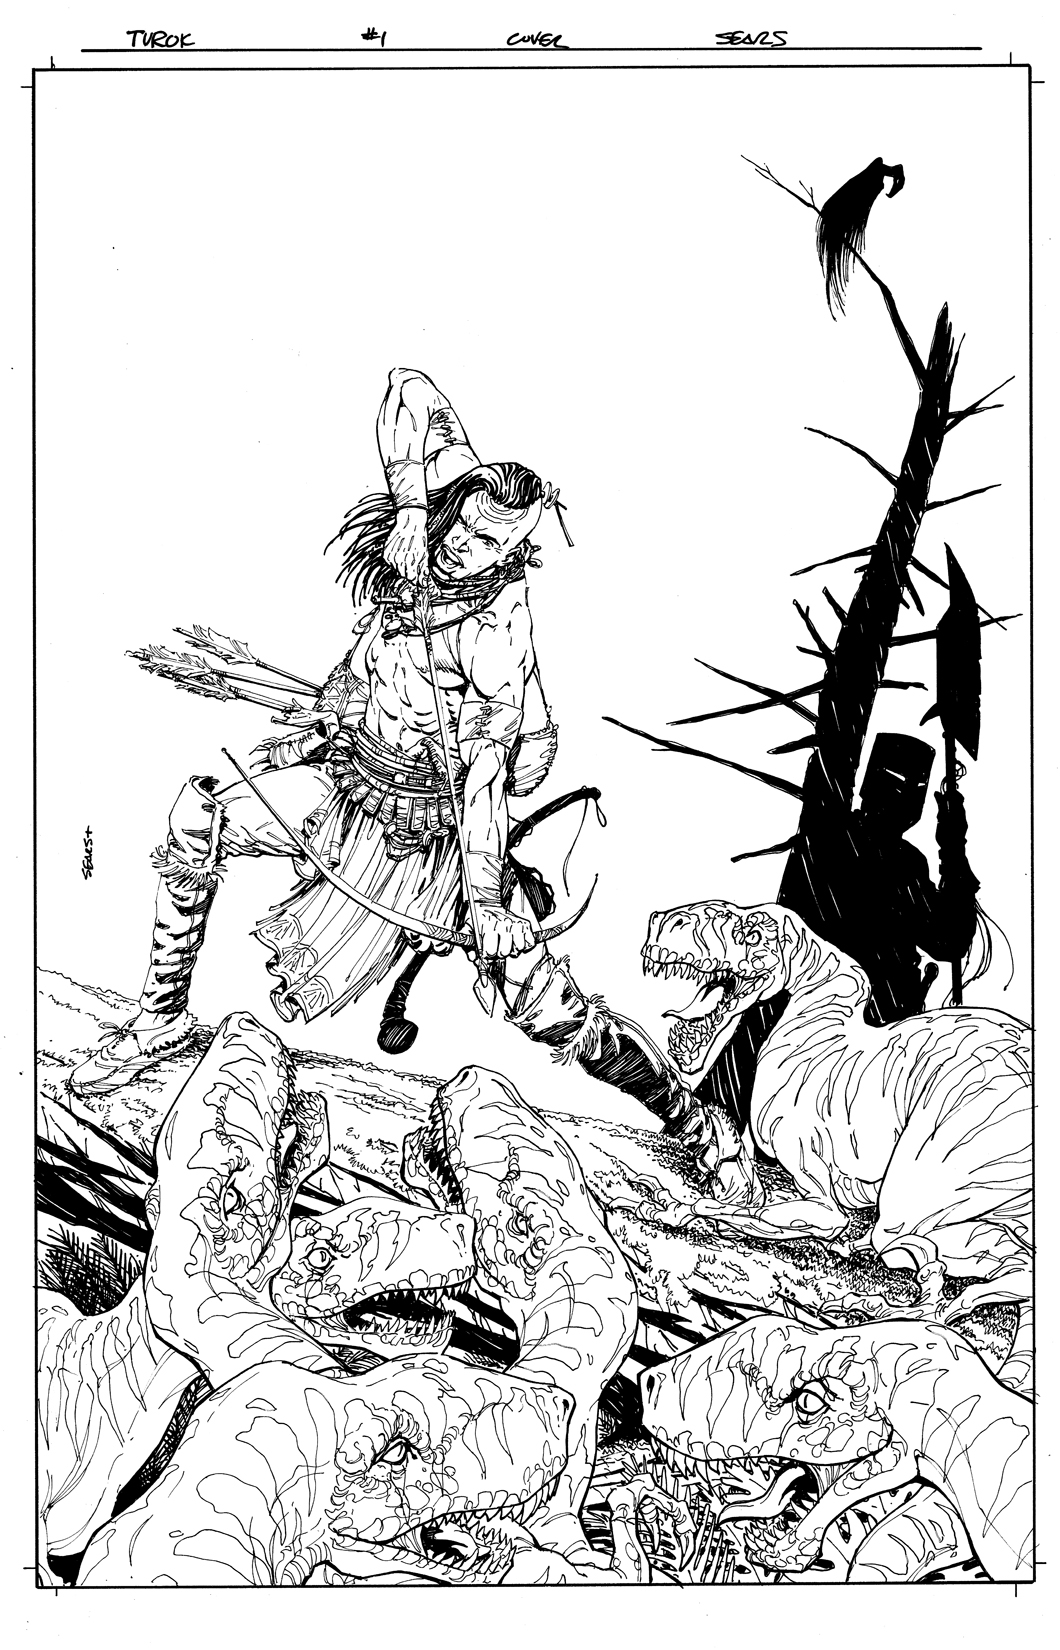 Turok_1_Cover_Inks_SEARS_150dpi